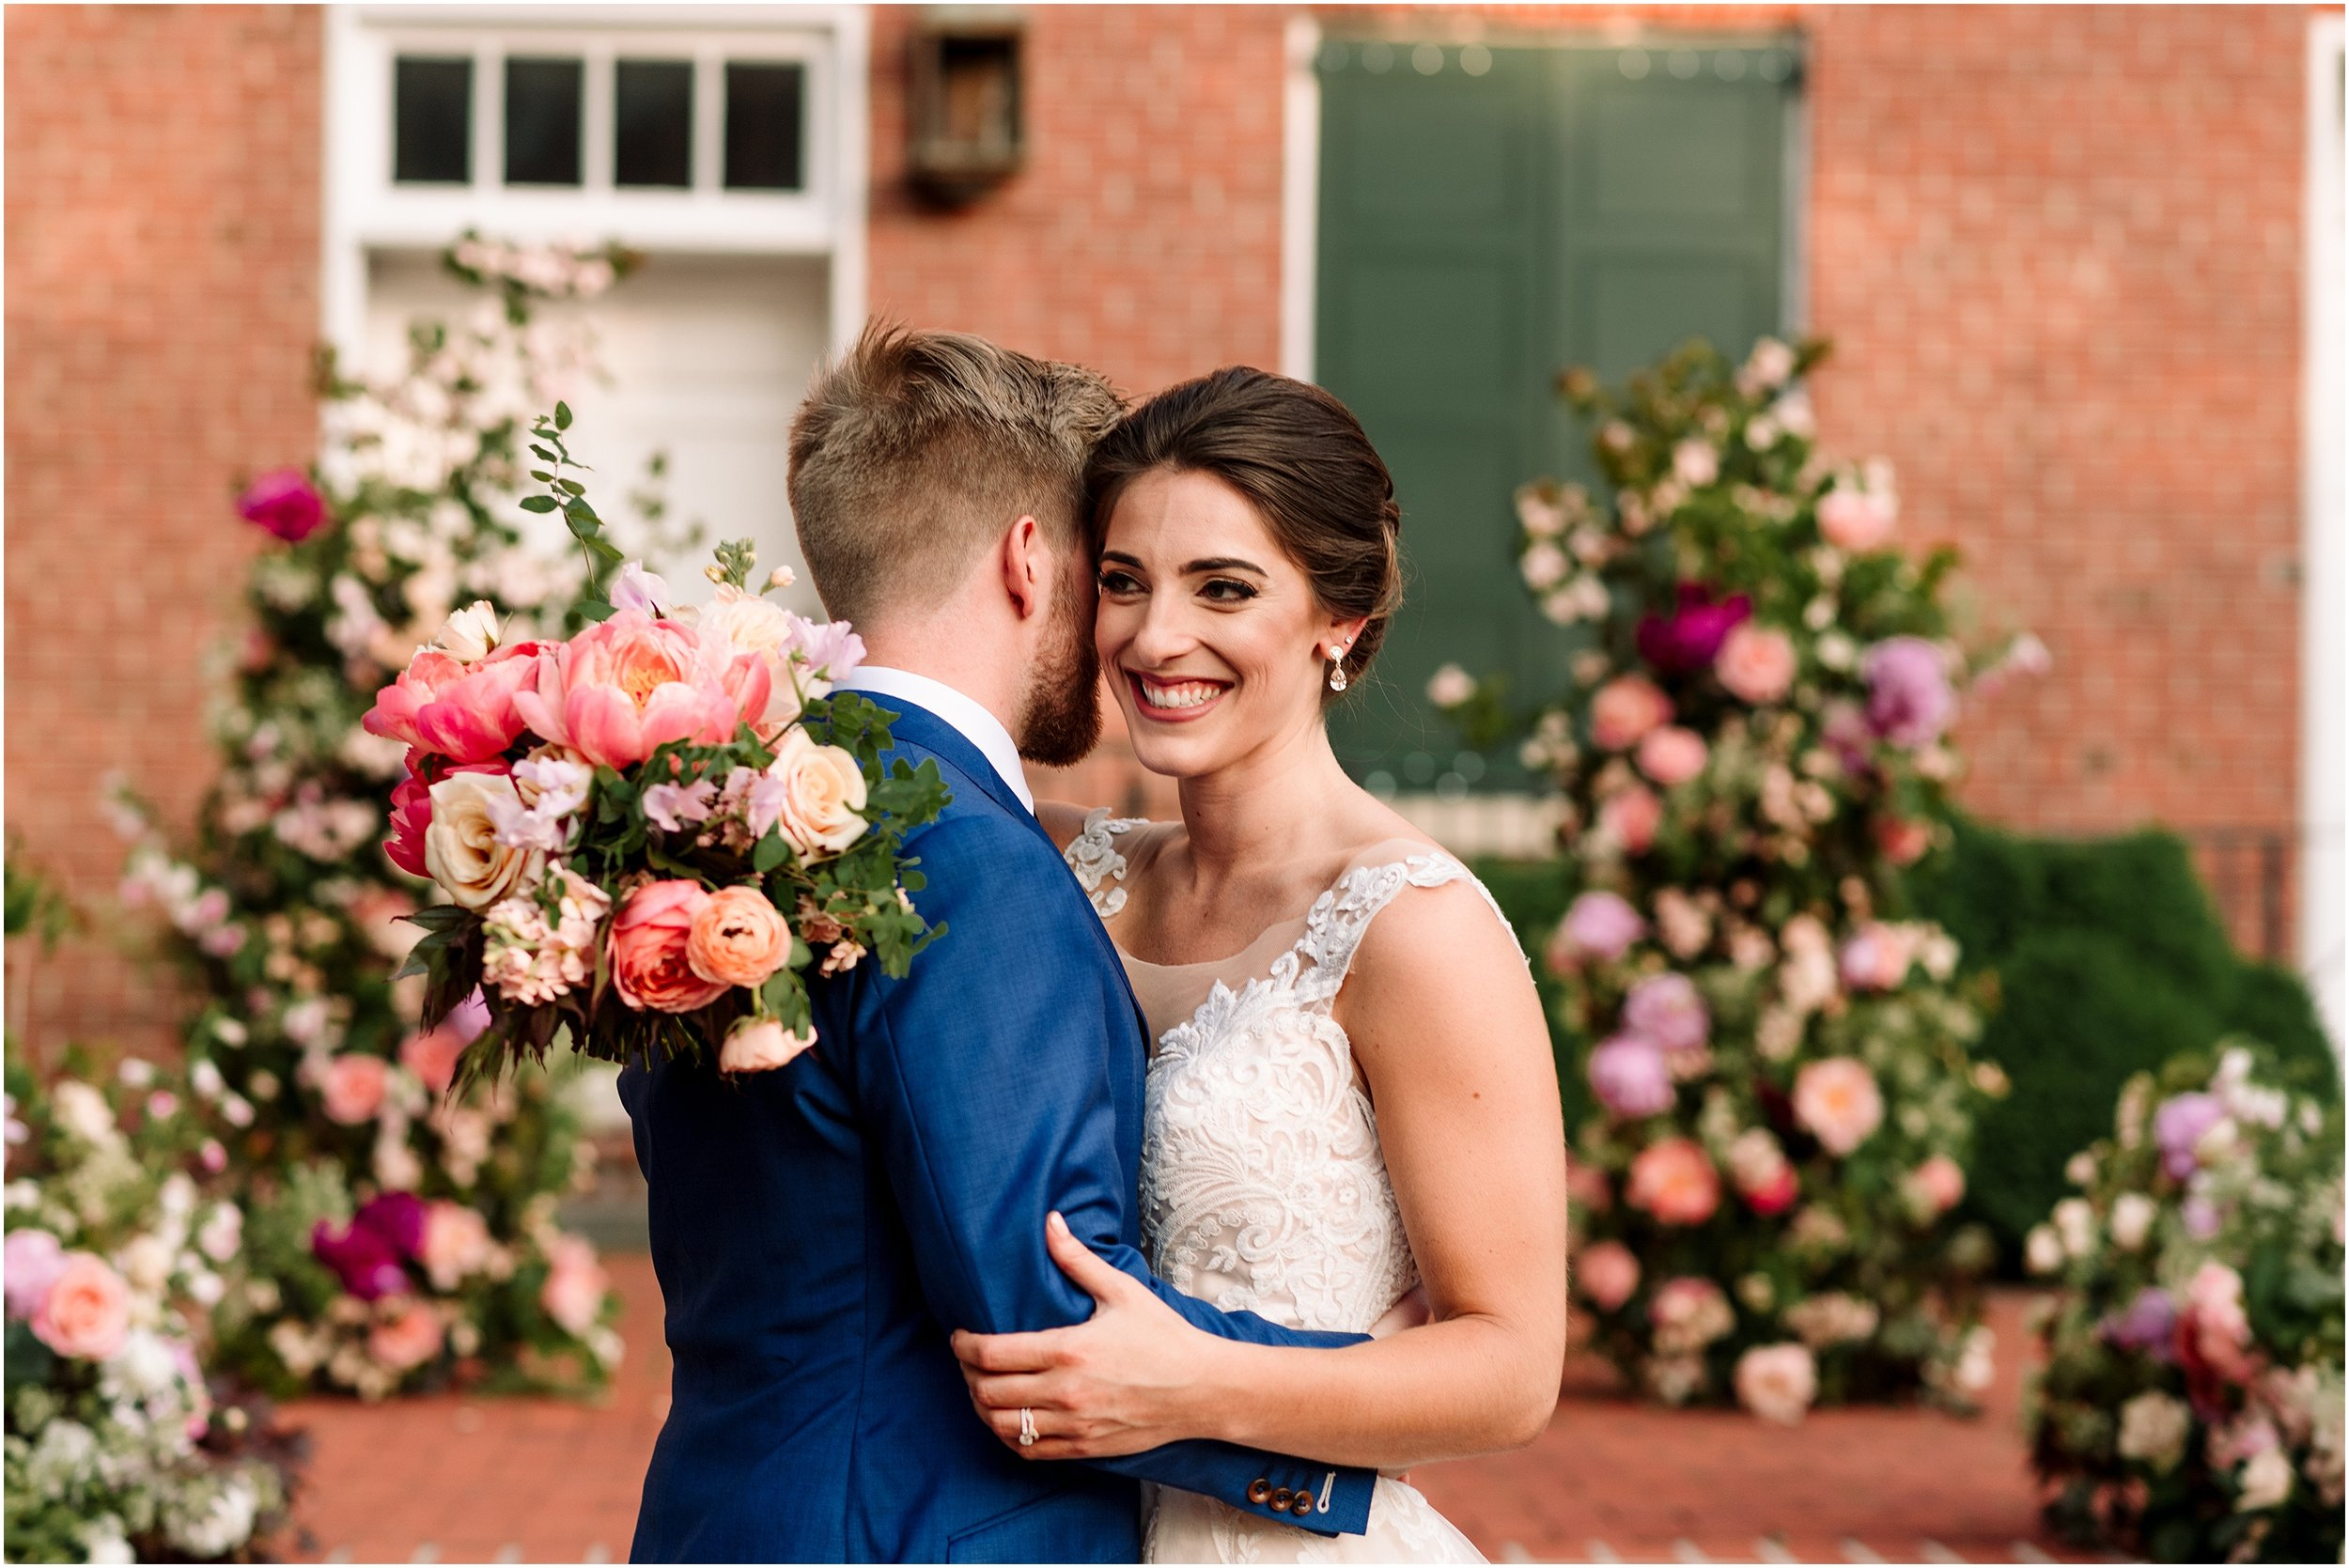 hannah leigh photography 1840s plaza wedding baltimore md_0086.jpg